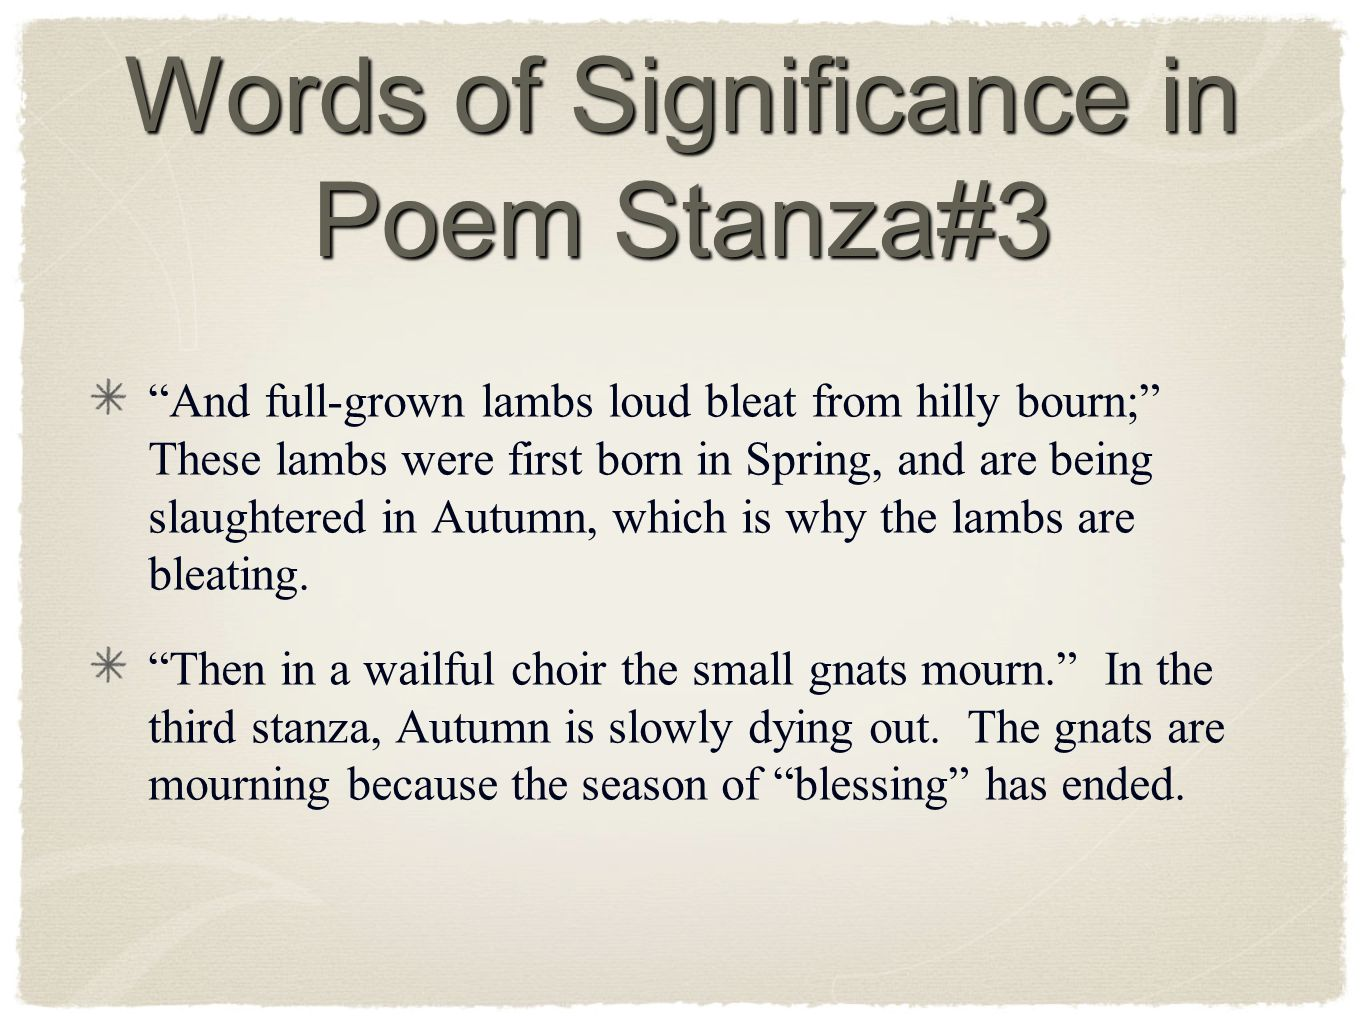 Words of Significance in Poem Stanza#3